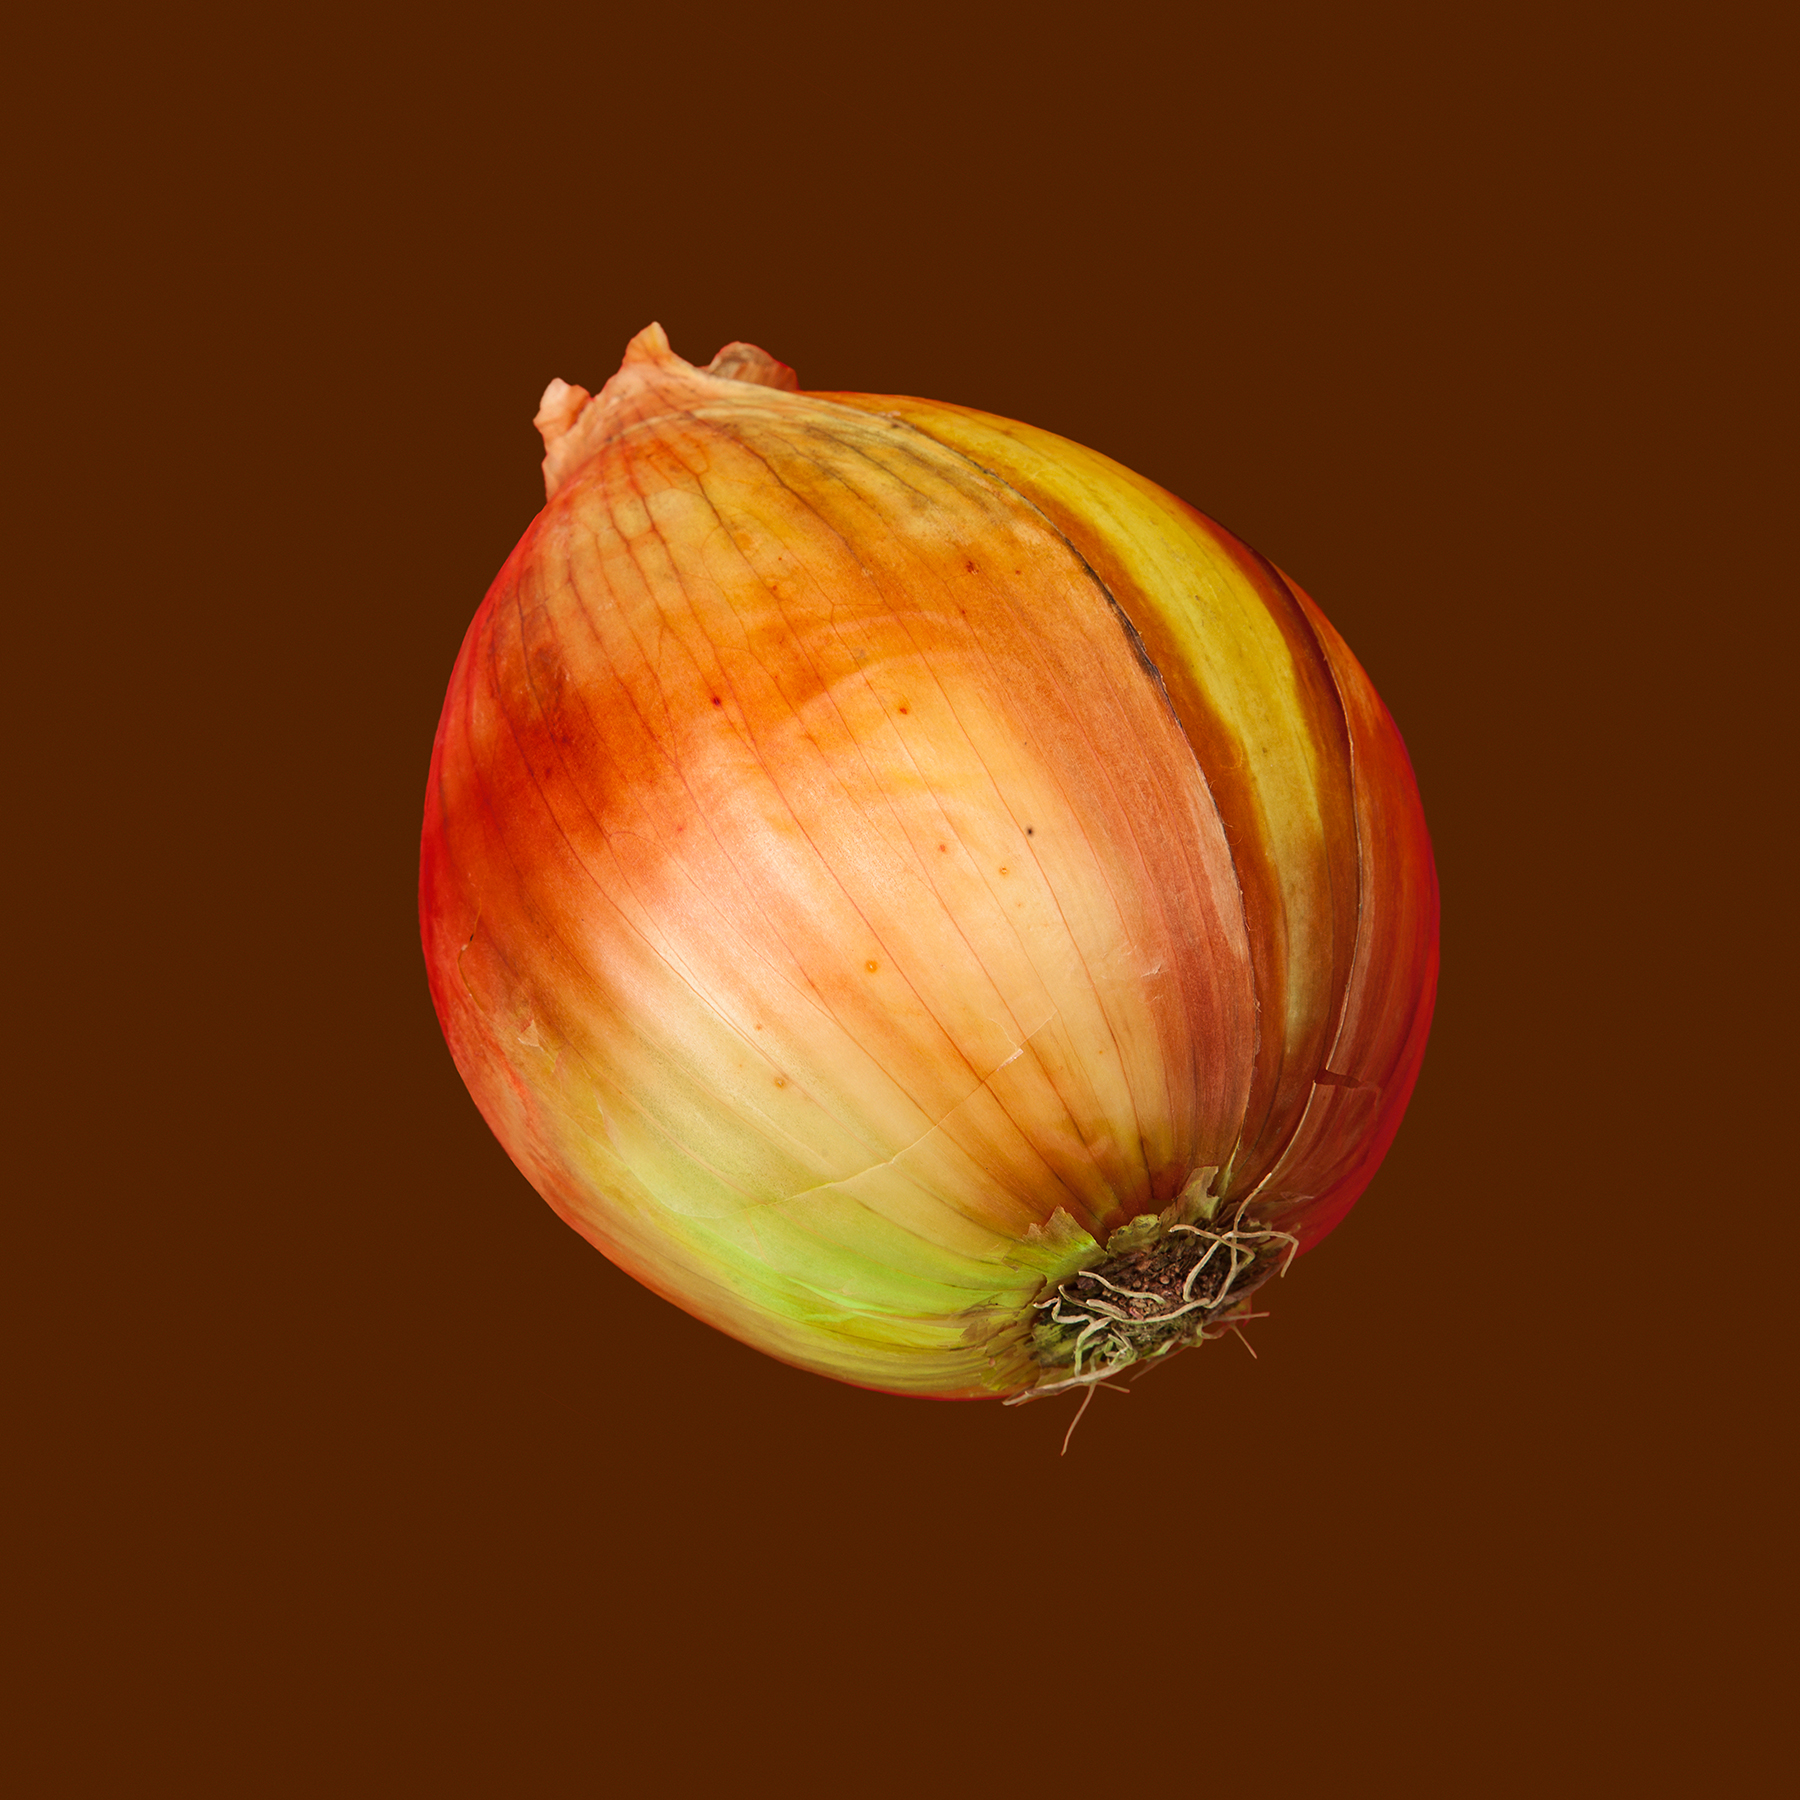 ONION-SWEET-ORGANIC-OINION-VEGETABLE-VFS-RIDGEWAY-FARM-©-JONATHAN-R.-BECKERMAN-PHOTOGRAPHY.jpg